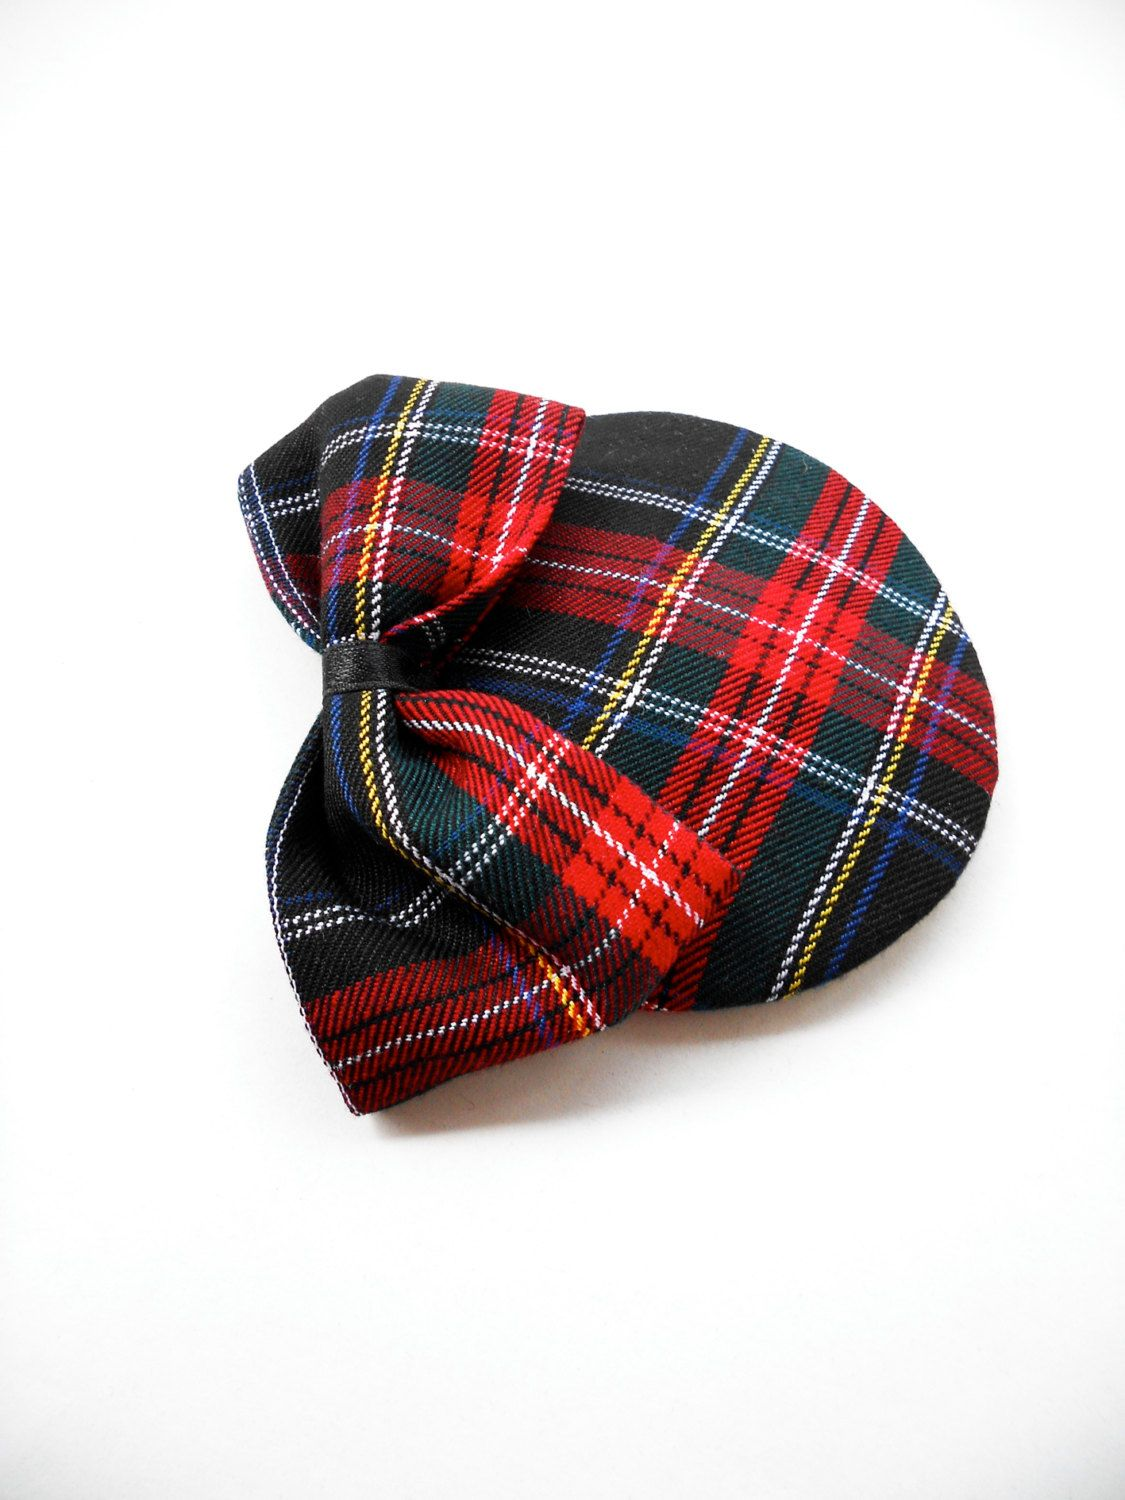 Tartan Plaid Vintage Inspired Pin Up 50s 60s Fascinator with Bow Hair Accessory Steampunk Victorian